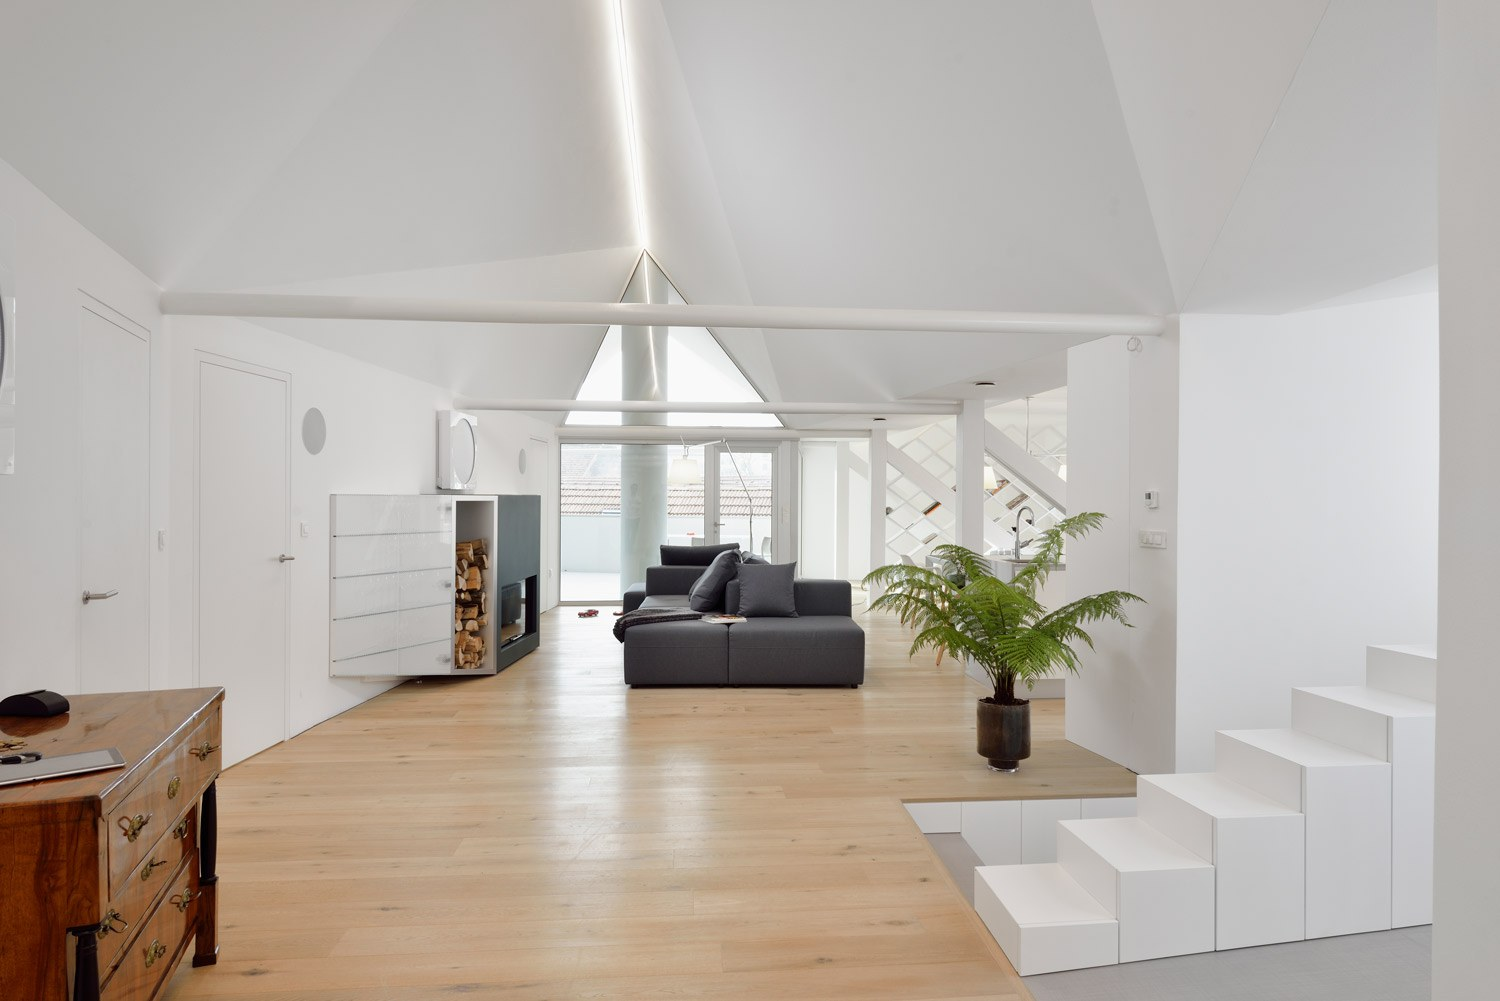 Living area with terrace Miran Kambic